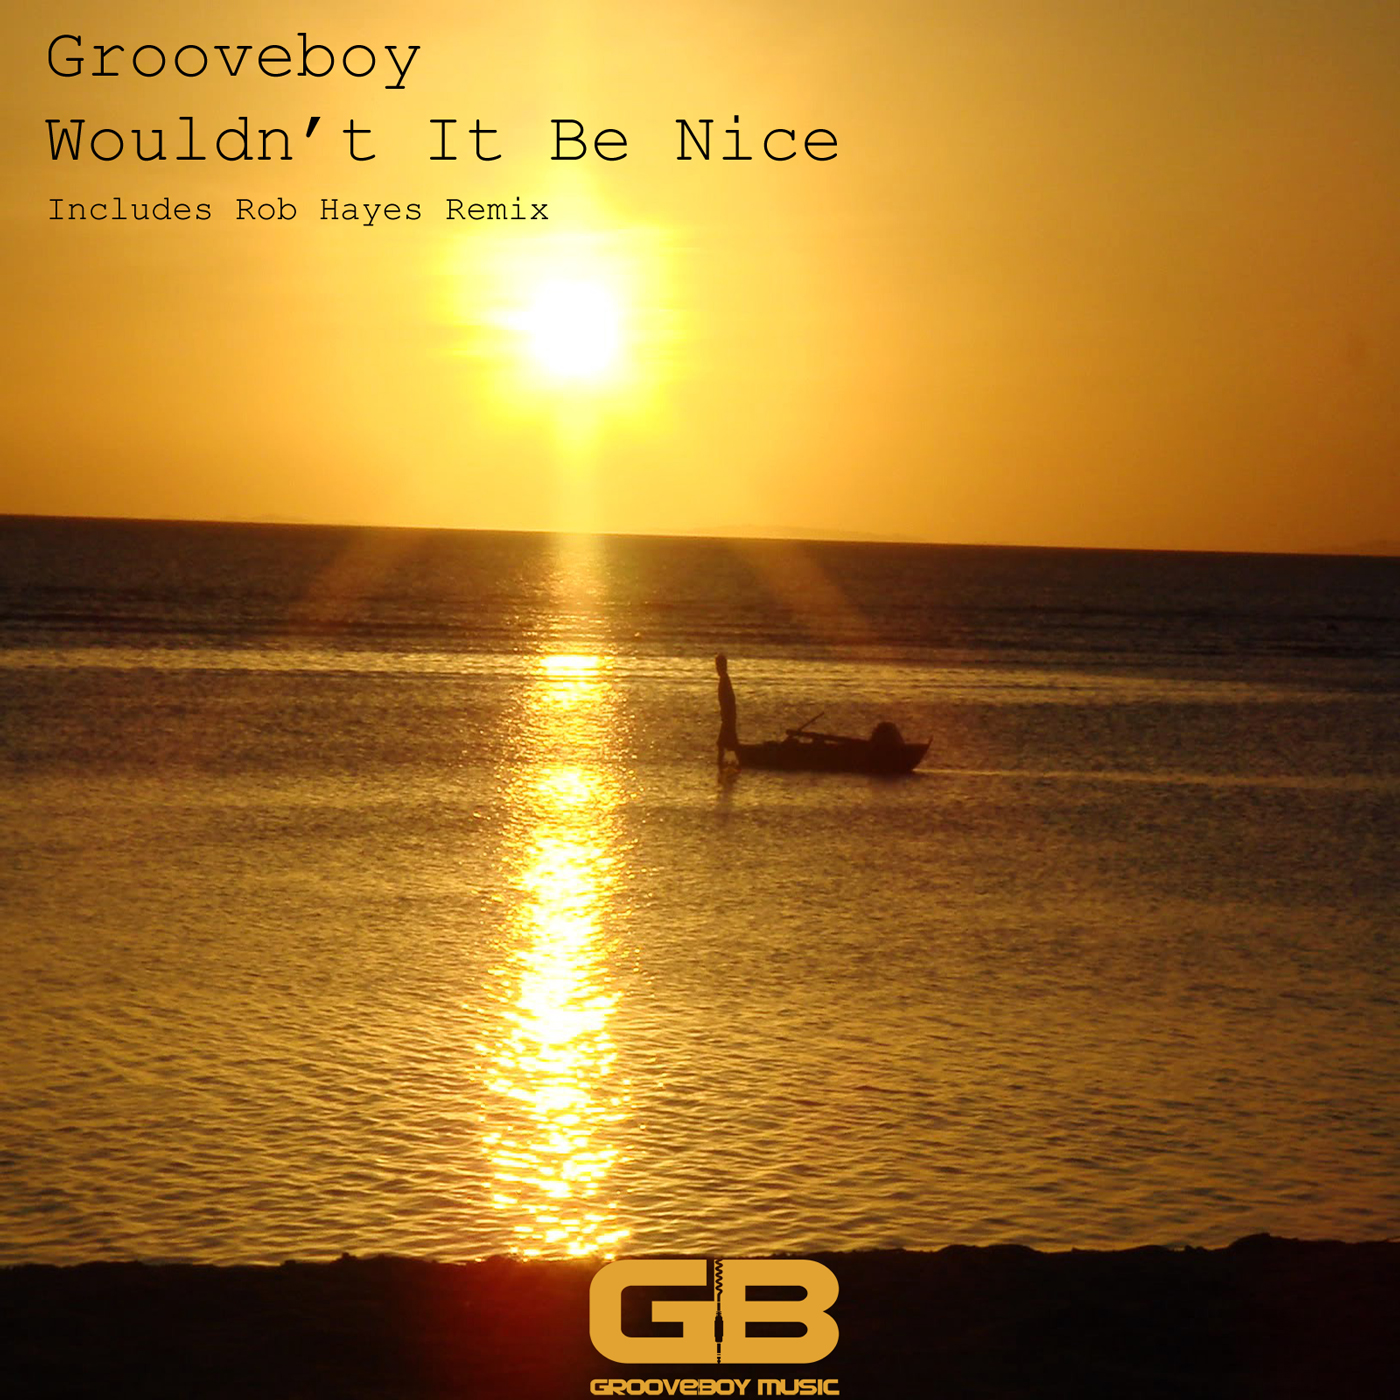 Grooveboy - Wouldn't It Be Nice